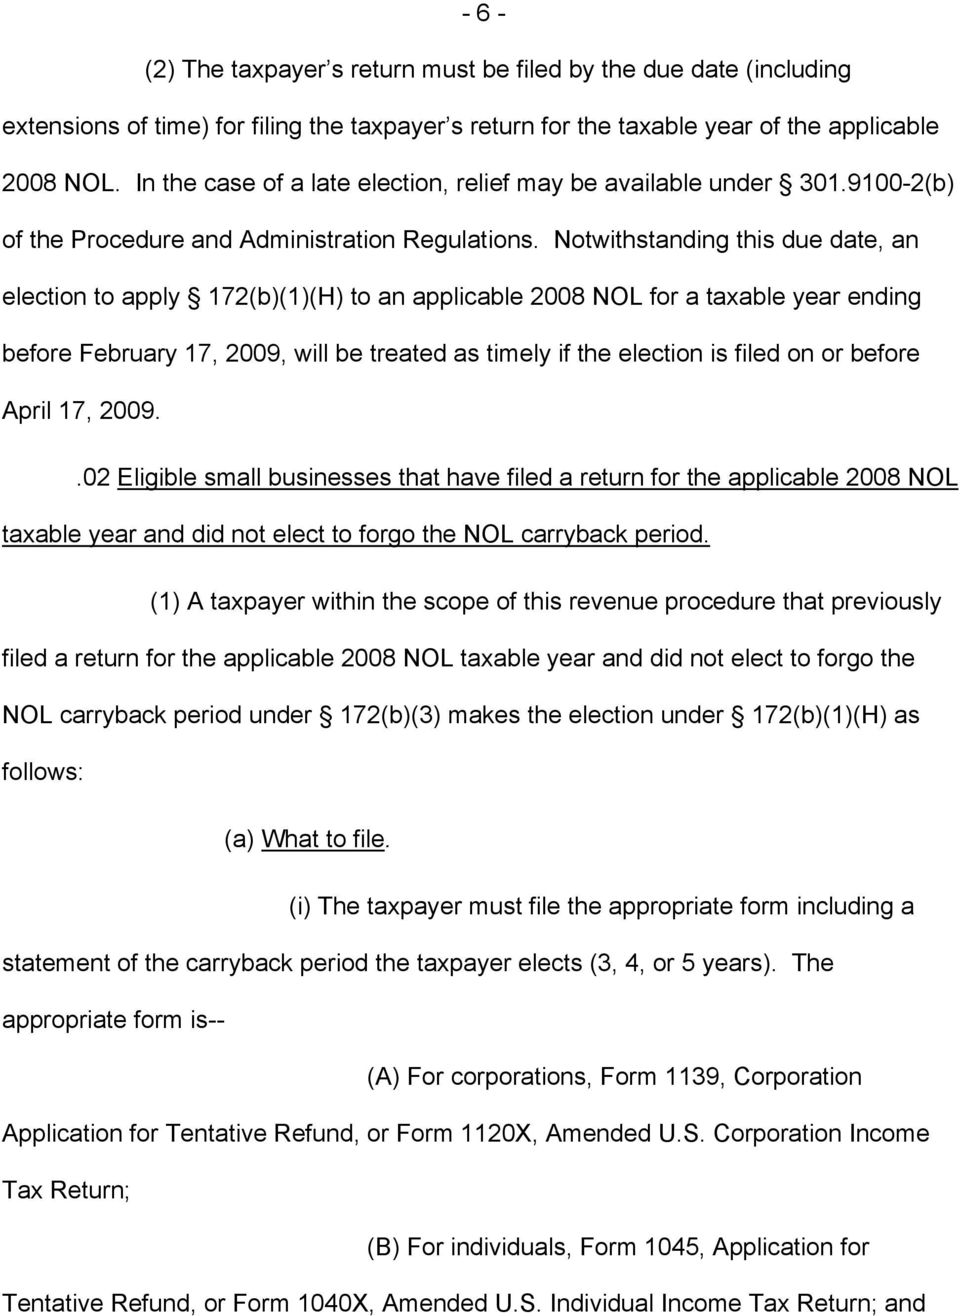 Notwithstanding this due date, an election to apply 172(b)(1)(H) to an applicable 2008 NOL for a taxable year ending before February 17, 2009, will be treated as timely if the election is filed on or